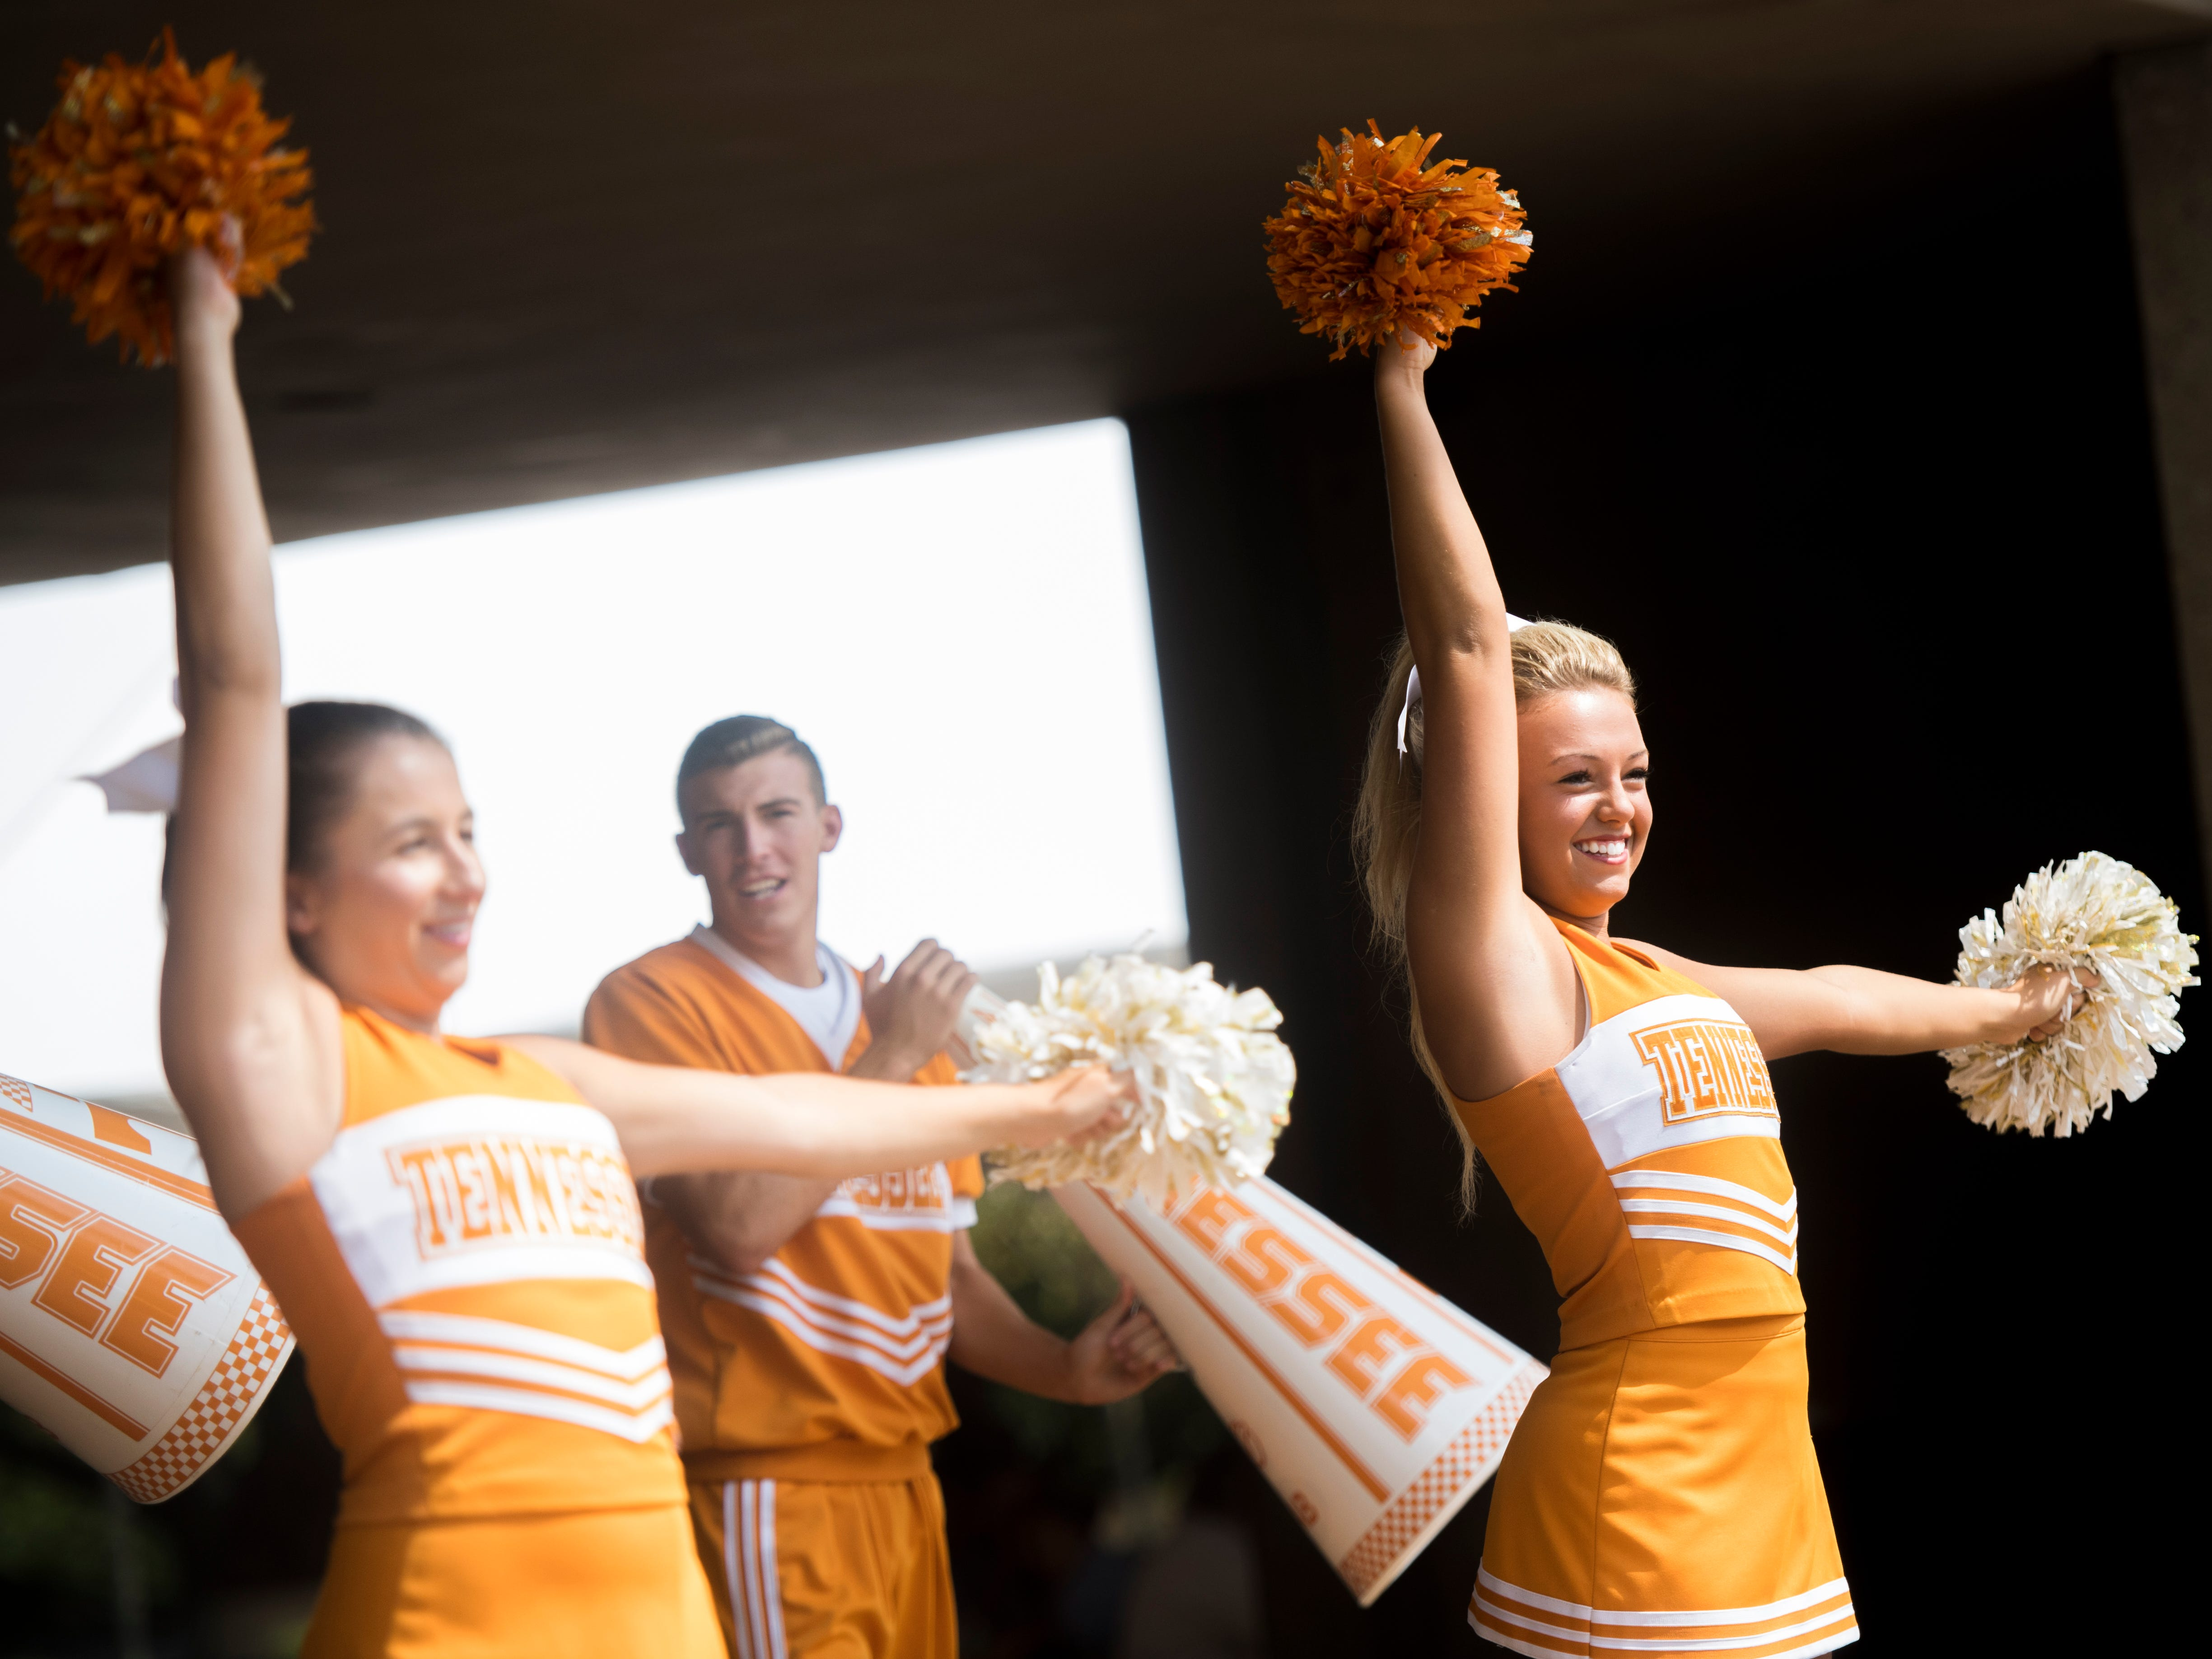 University of Tennessee cheerleaders perform cheers as faculty and staff enjoy a start-of-the-semester picnic held at McClung Plaza on UT's campus on Monday, August 20, 2018.